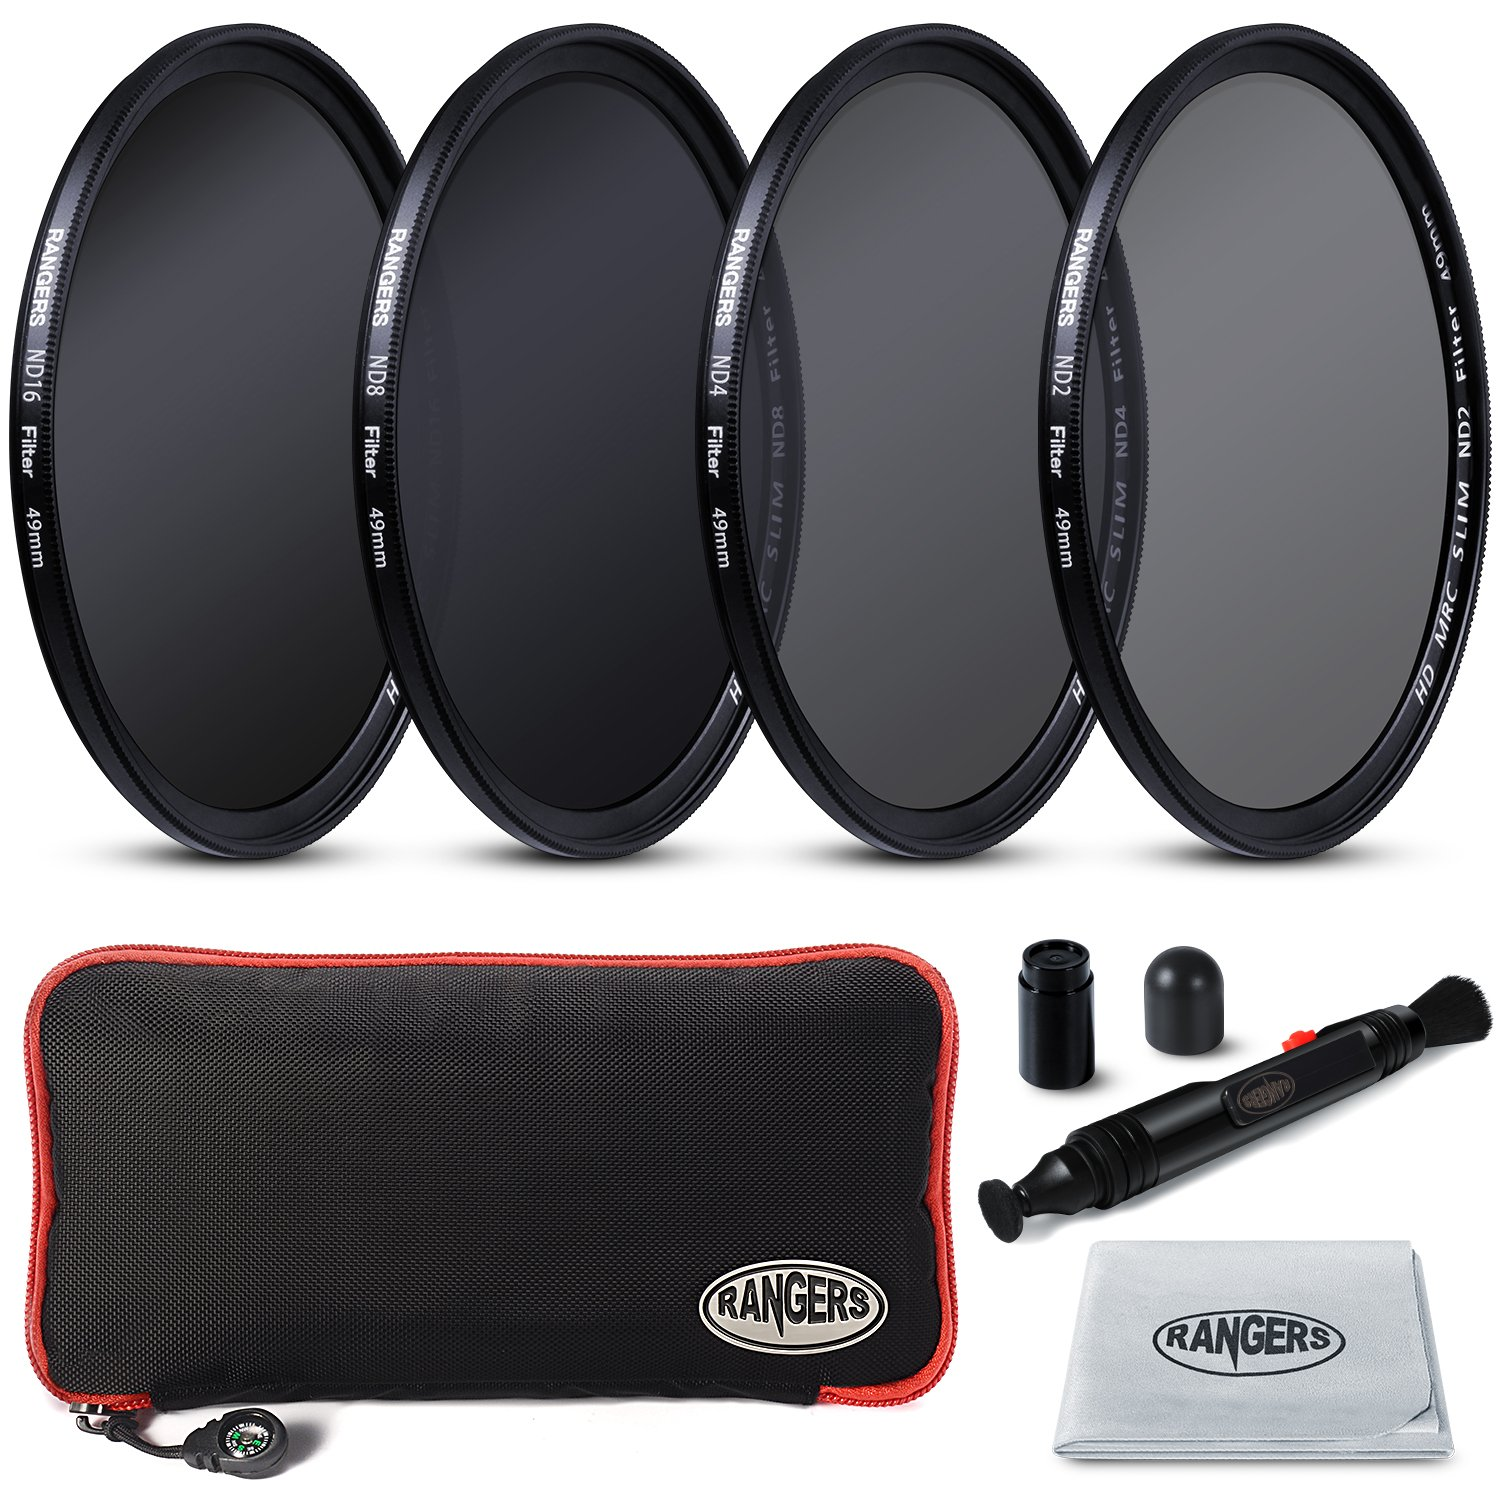 Rangers 49mm Full ND2, ND4, ND8, ND16 Neutral Density Filters and Carrying Case + Lens Cleaning Cloth + Lens Cleaning Pen RA-RA015